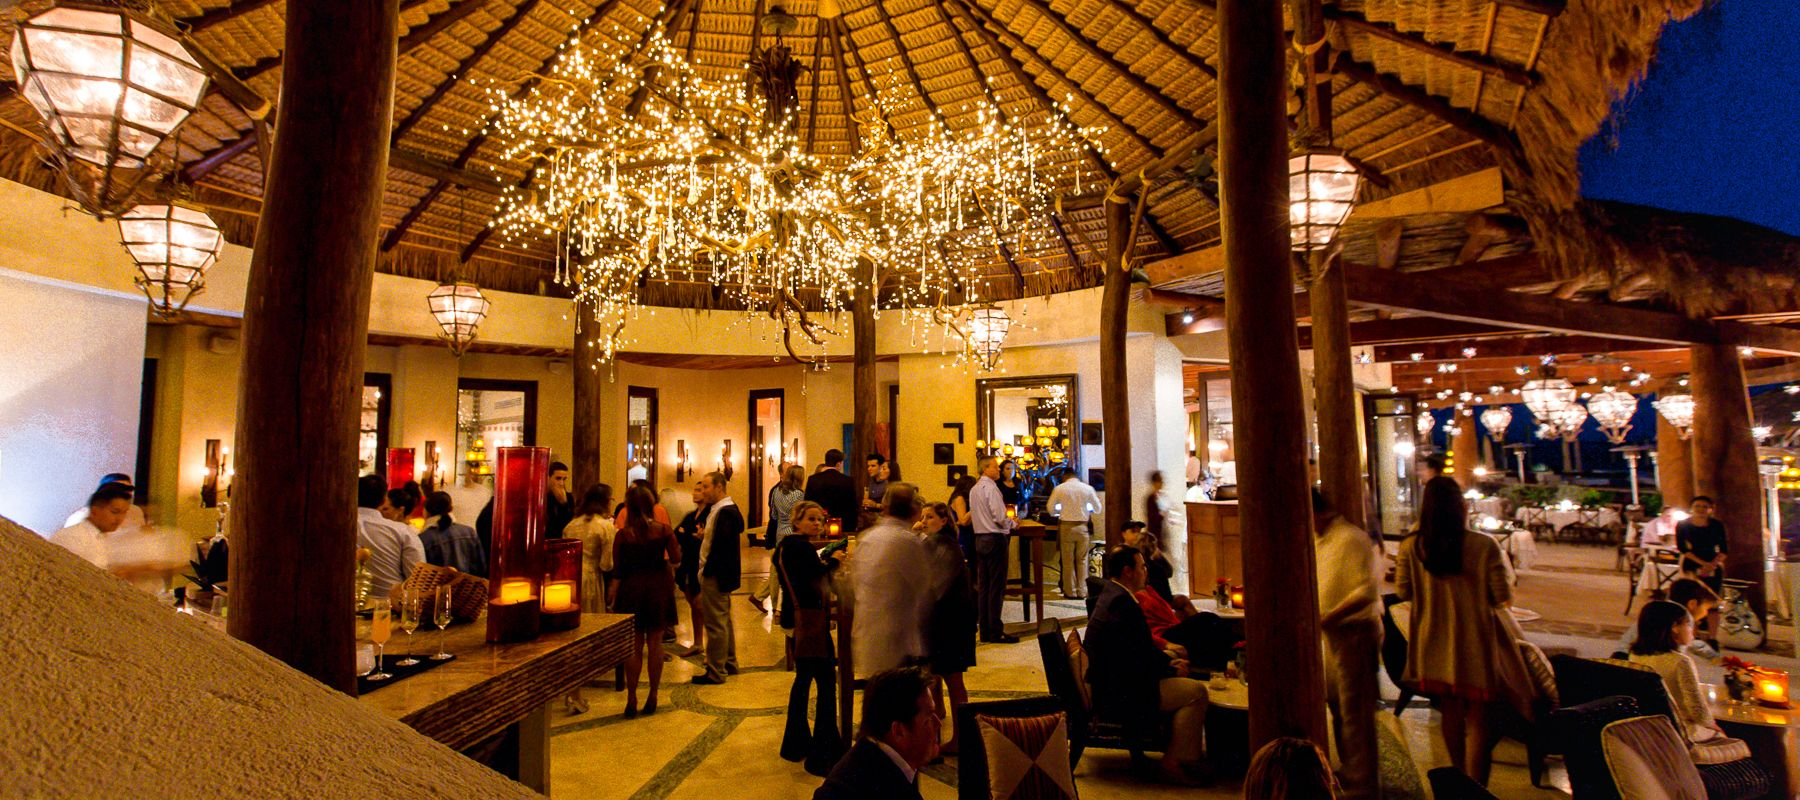 Christmas Festivities at The Resort at Pedregal